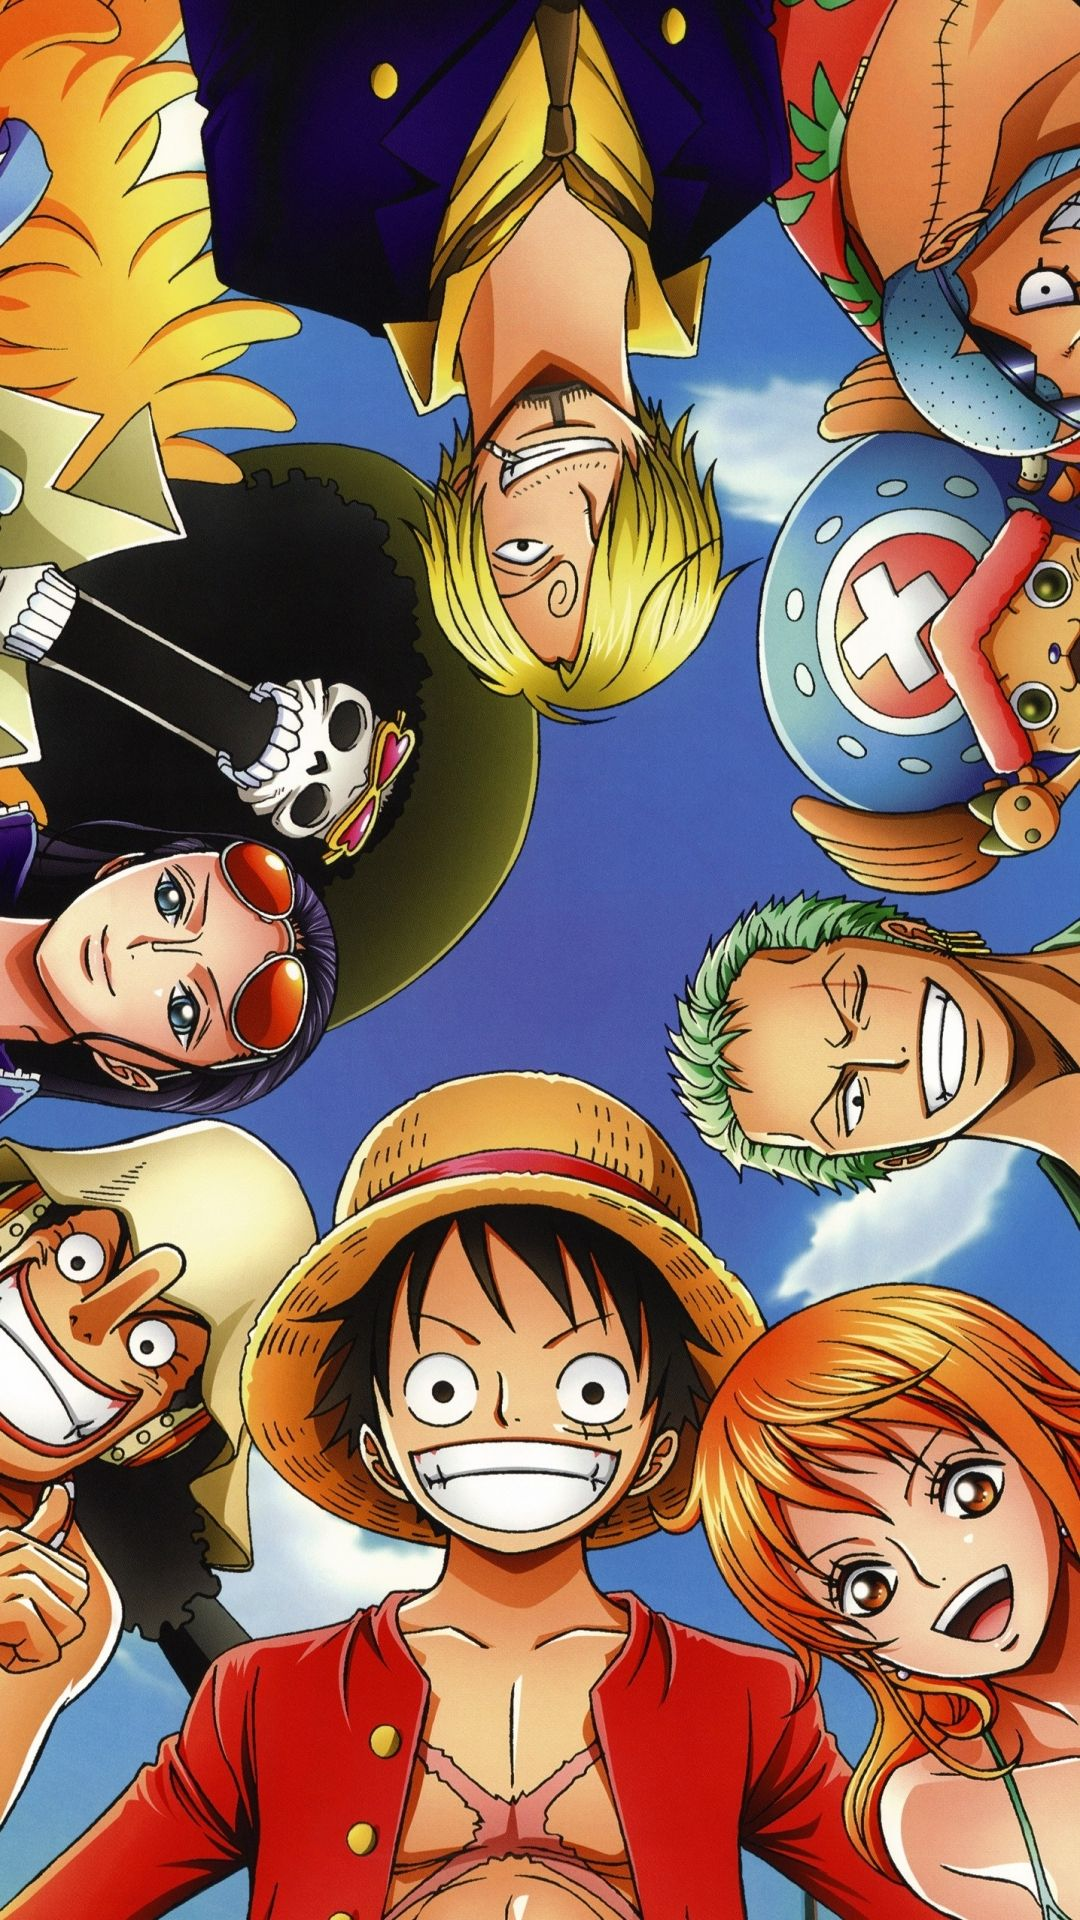 Make it easy with our tips on application. One Piece Iphone Wallpaper Download Free One Piece Episodes One Piece Wallpaper Iphone One Piece Luffy